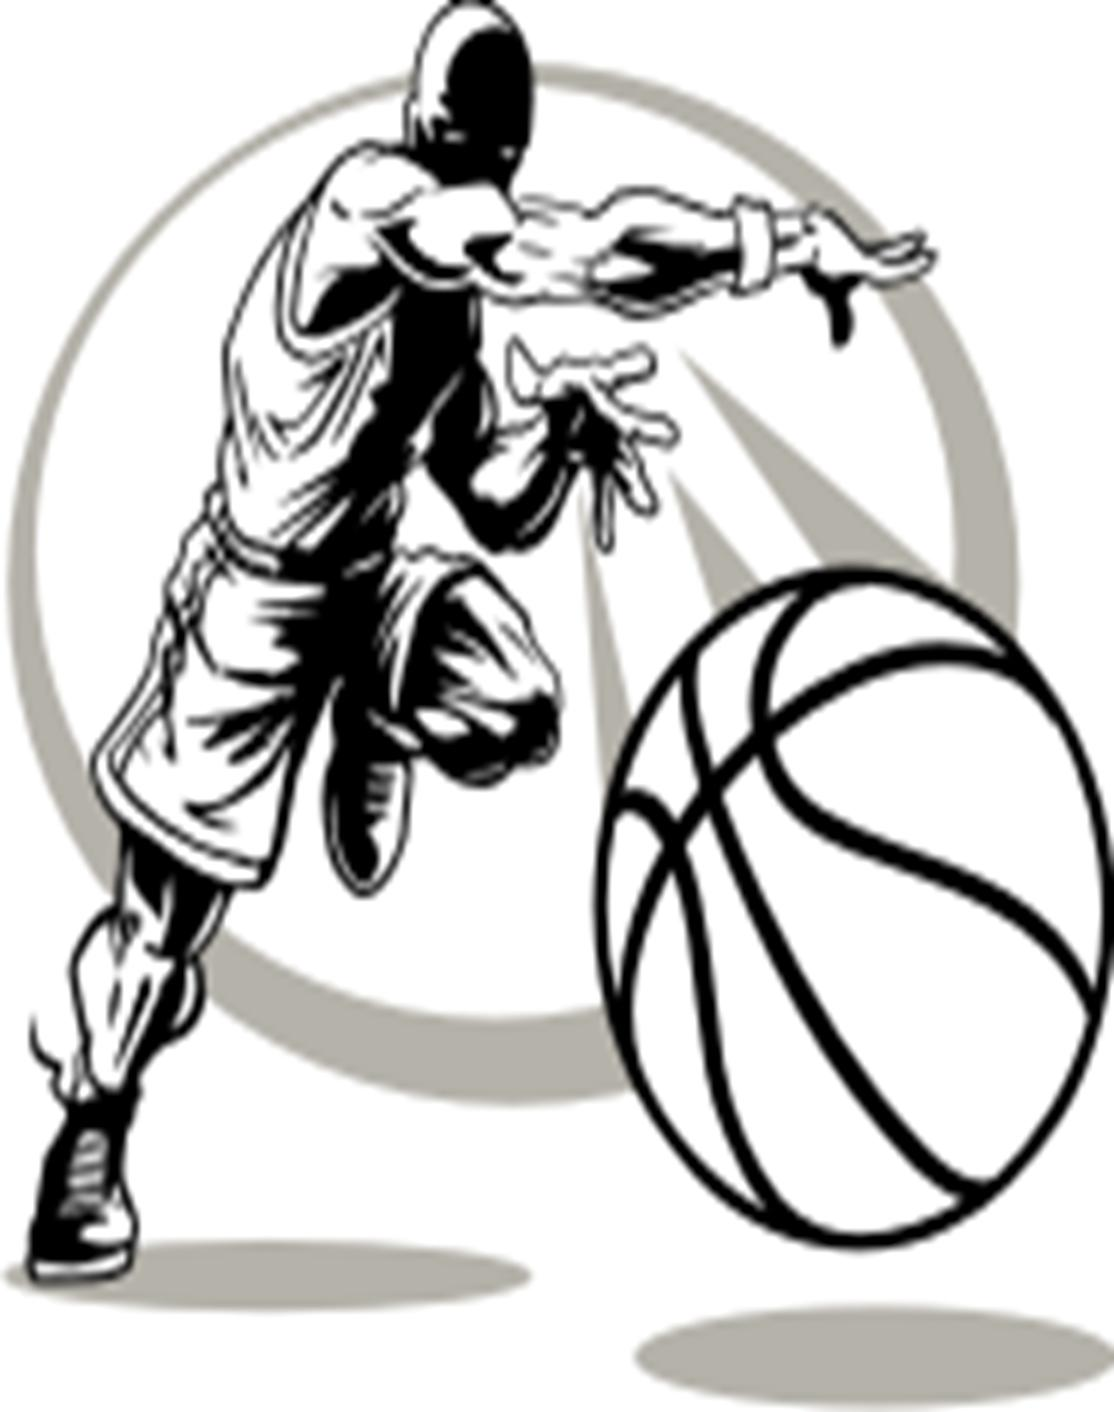 Kid Basketball Player Clipart Free Images